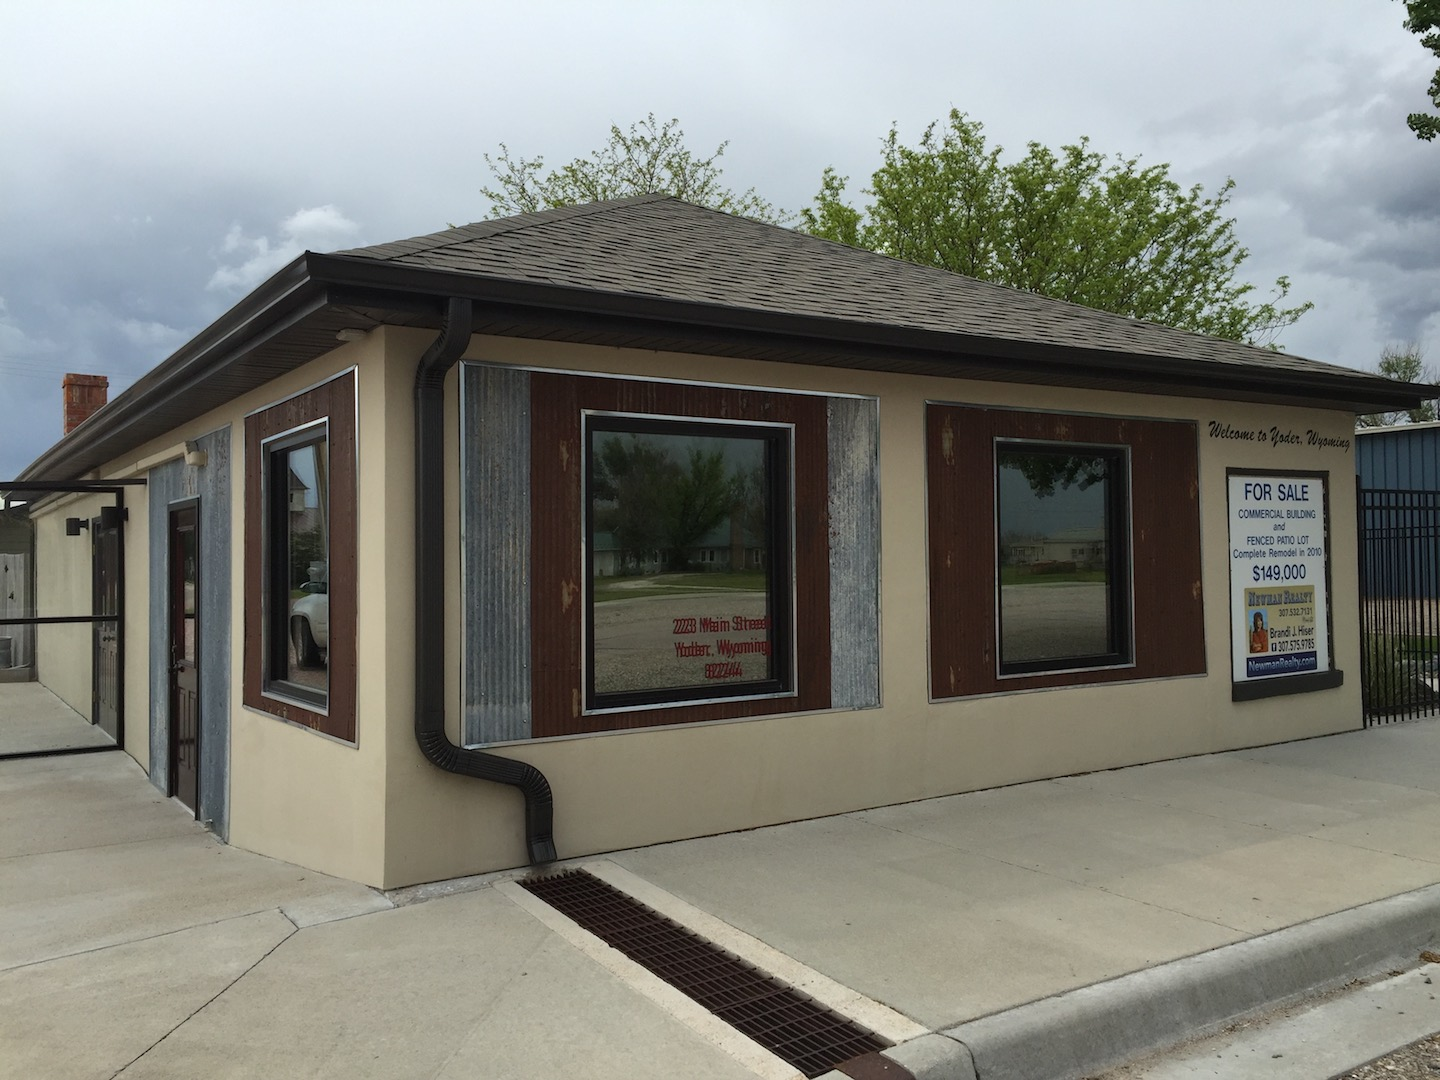 REMODELED BUILDING 223 Main Street, Yoder, WY 82244